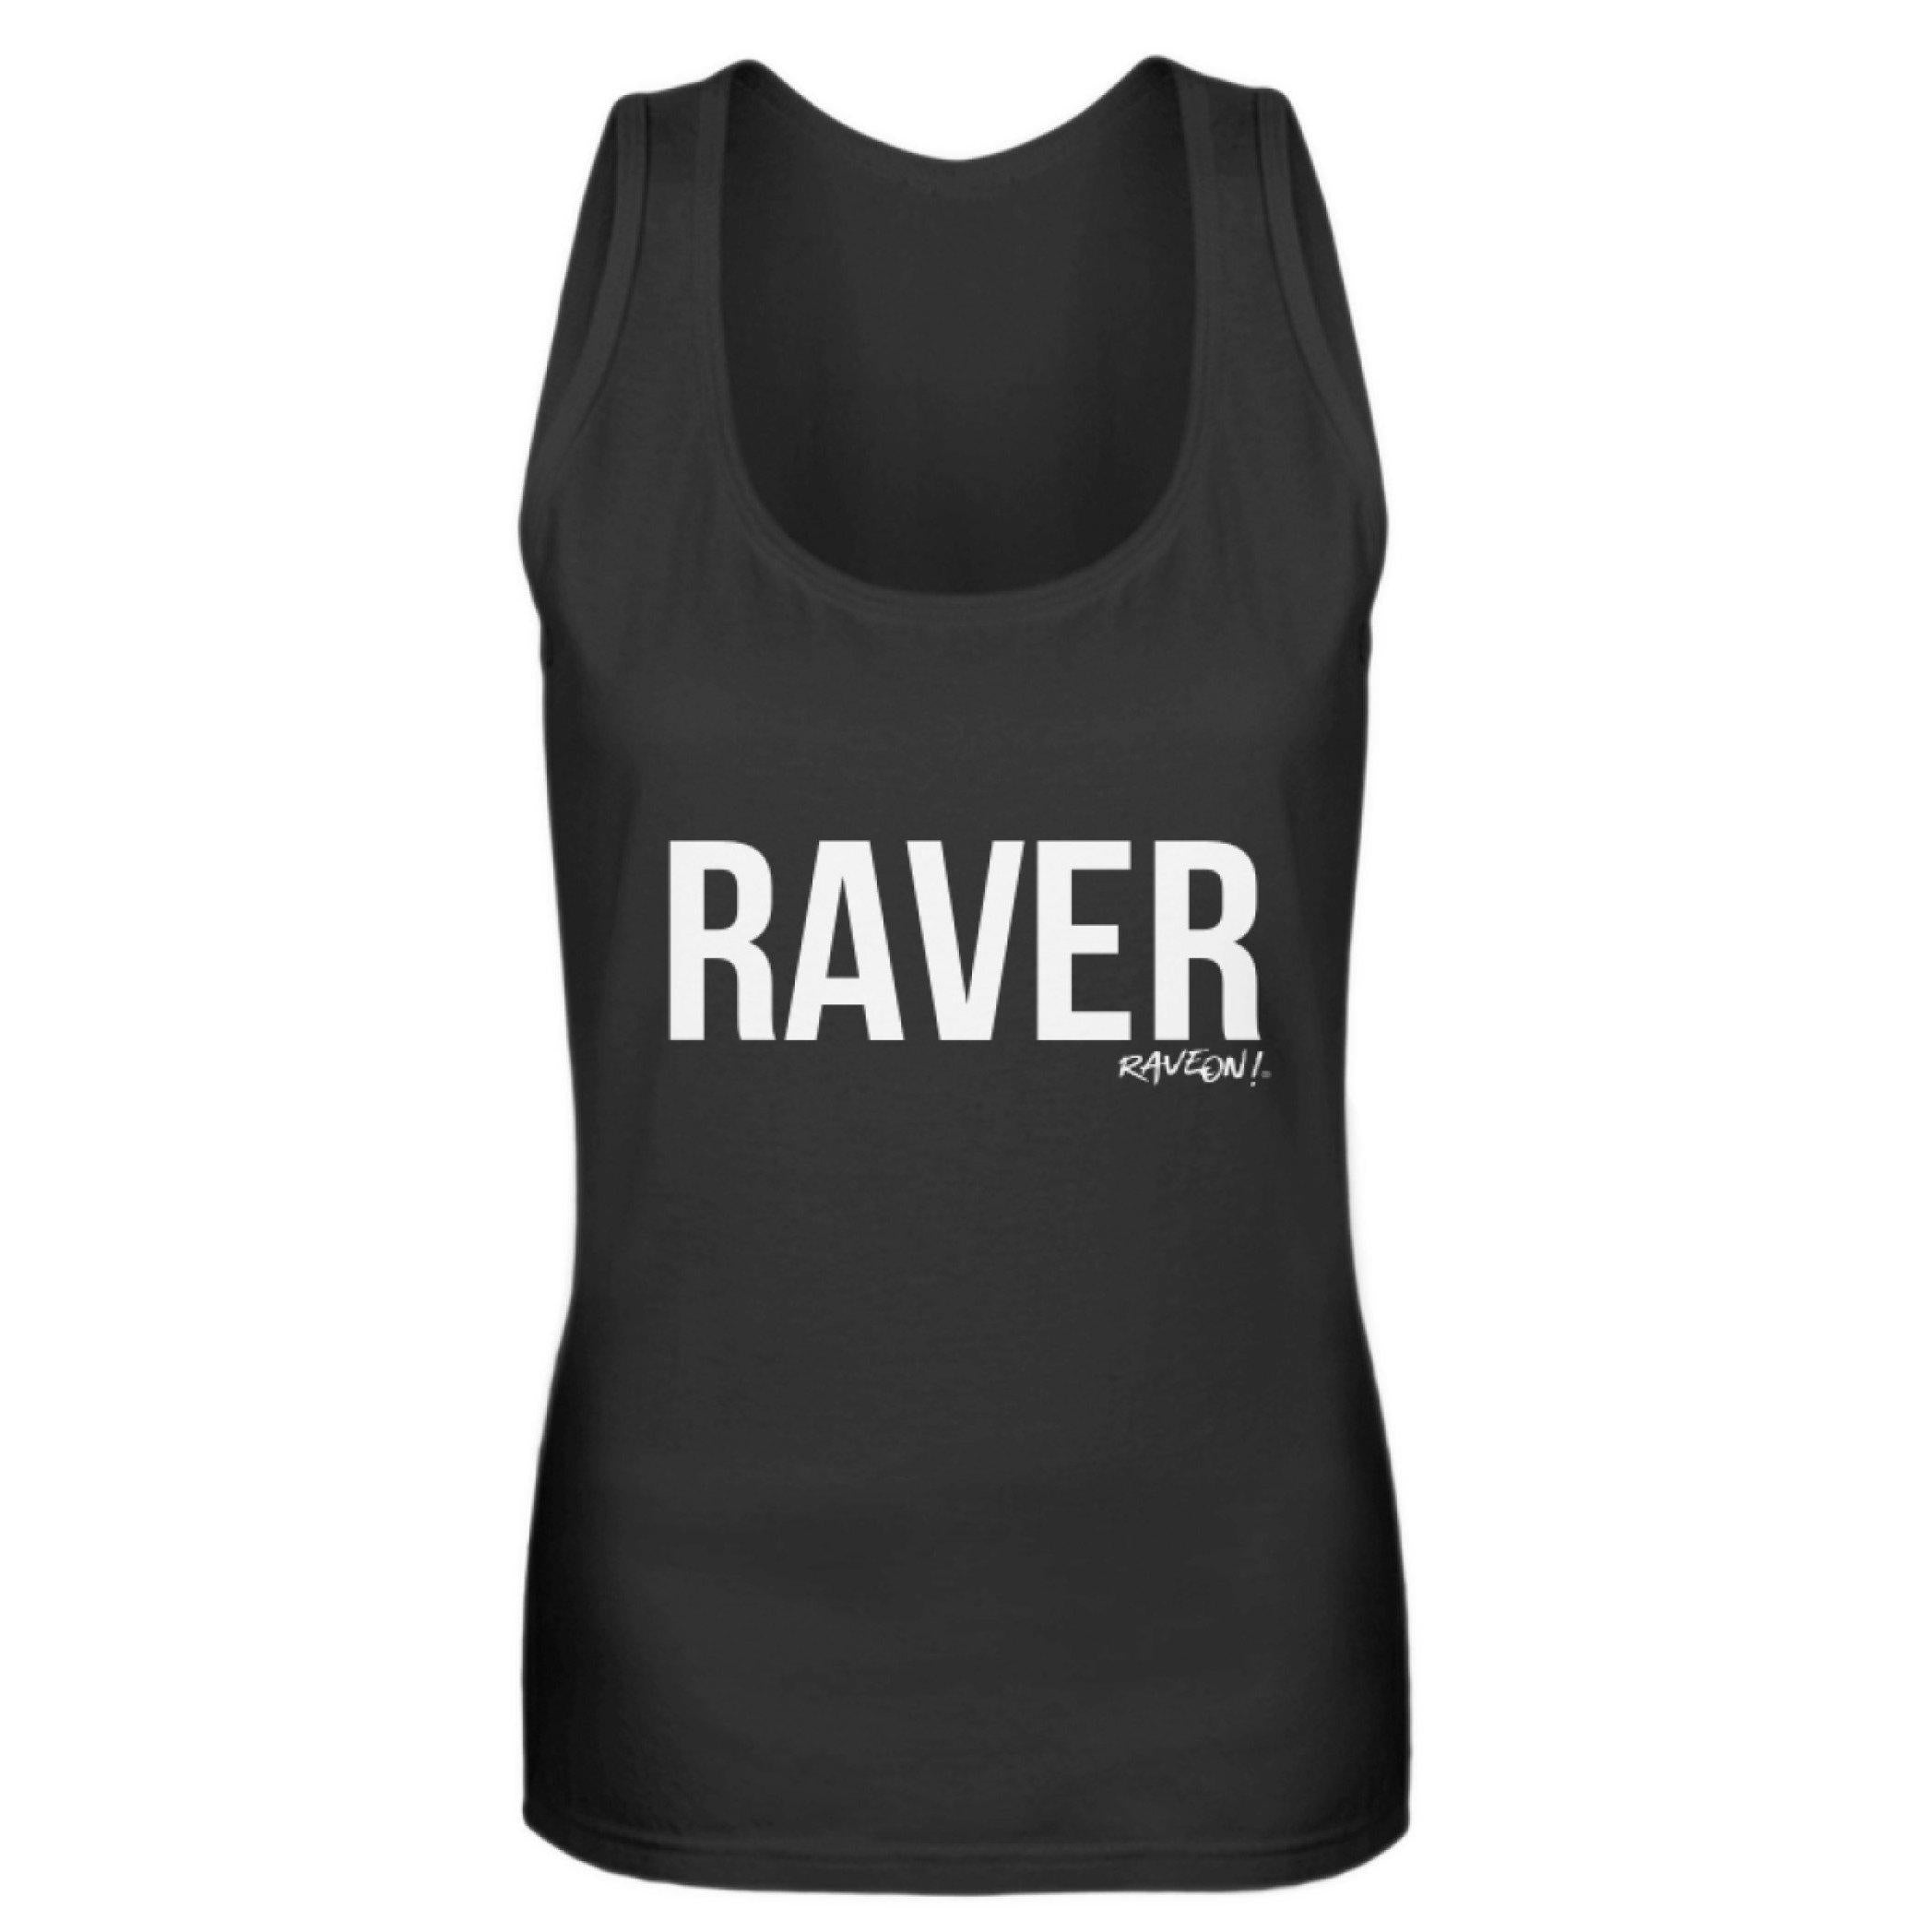 RAVER Girls Tanktop by Rave On!® Damen Tank-Top Black / S - Rave On!® der Club & Techno Szene Shop für Coole Junge Mode Streetwear Style & Fashion Outfits + Sexy Festival 420 Stuff